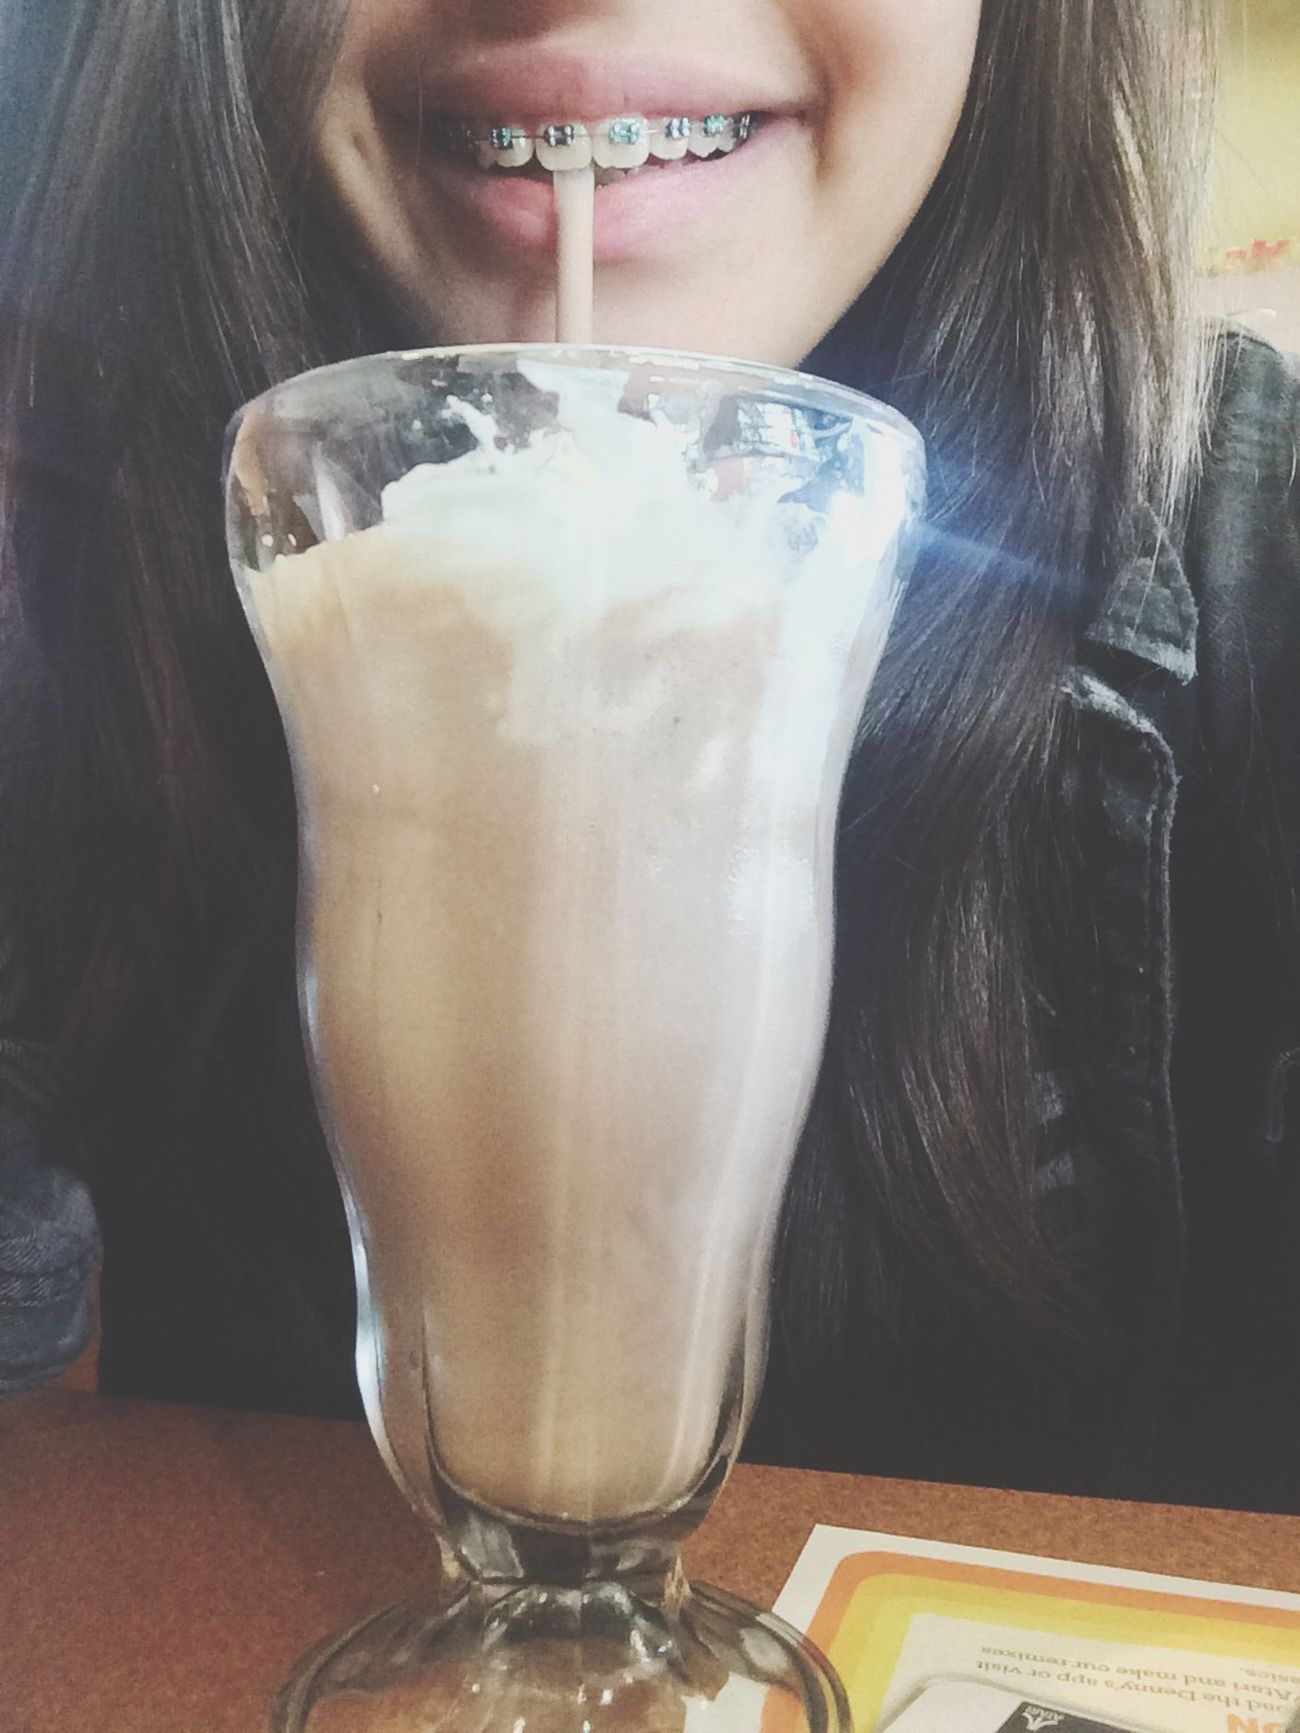 Denny's around 10. (: milkshakes are just my thing. Breakfast Milkshake Braces Denny's First Eyeem Photo